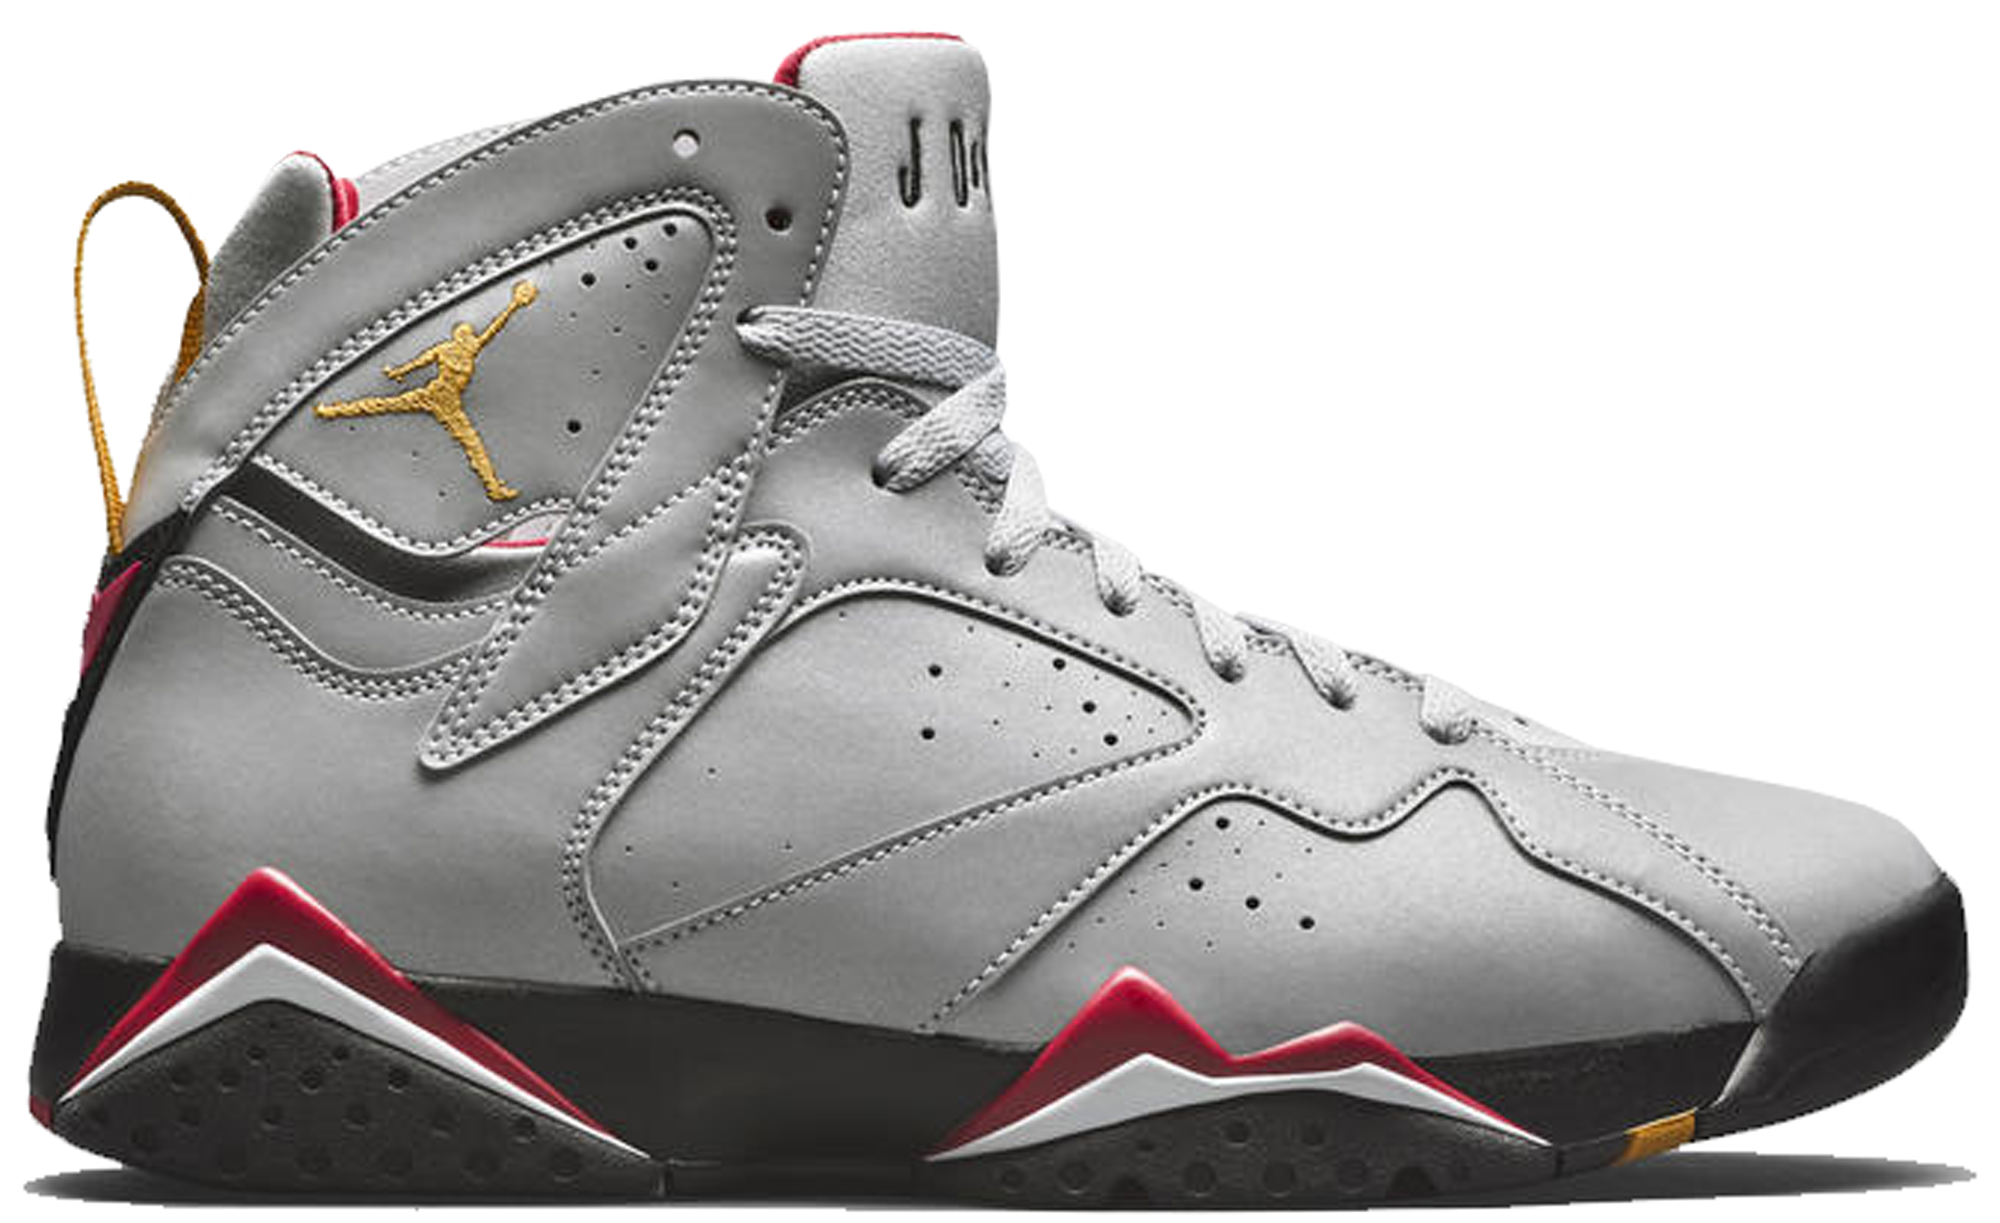 Jordan 7 Men Basketball Shoes University Blue Tinker Alternate Olympic Hares Bordeaux Cigar Cardinal Raptro Charc Outdoor Shoes Remote Control Toys